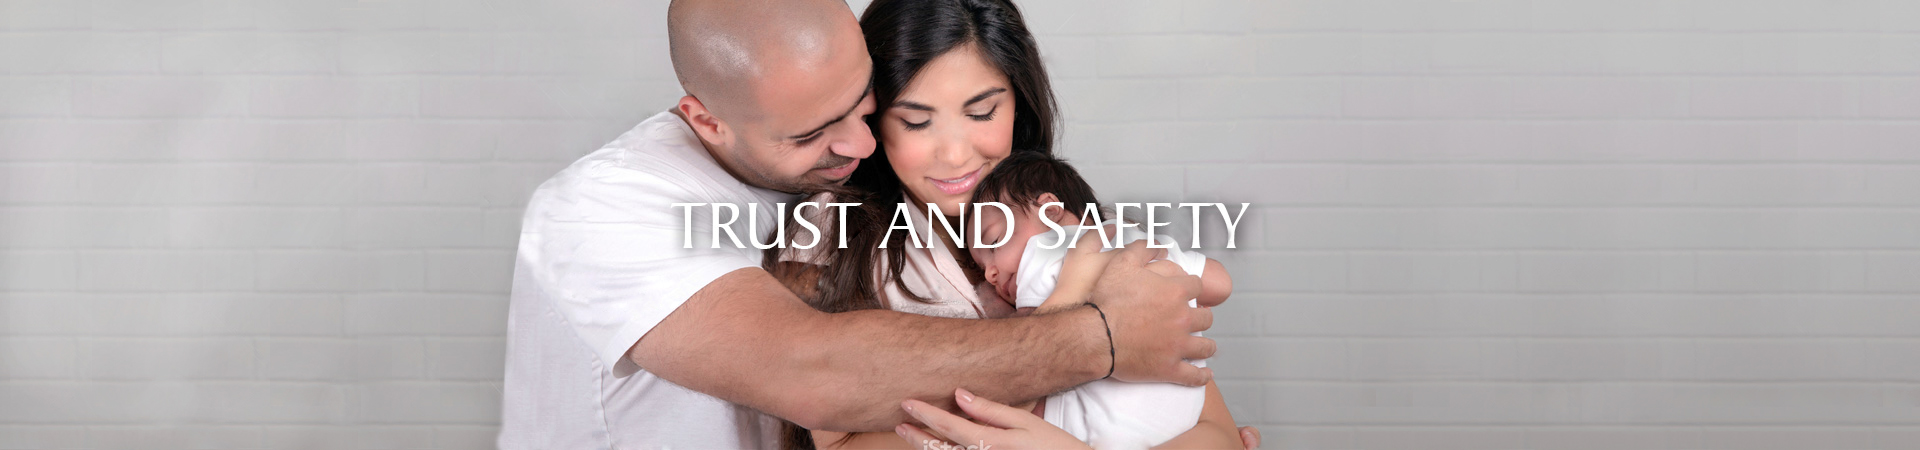 trust-and-safety